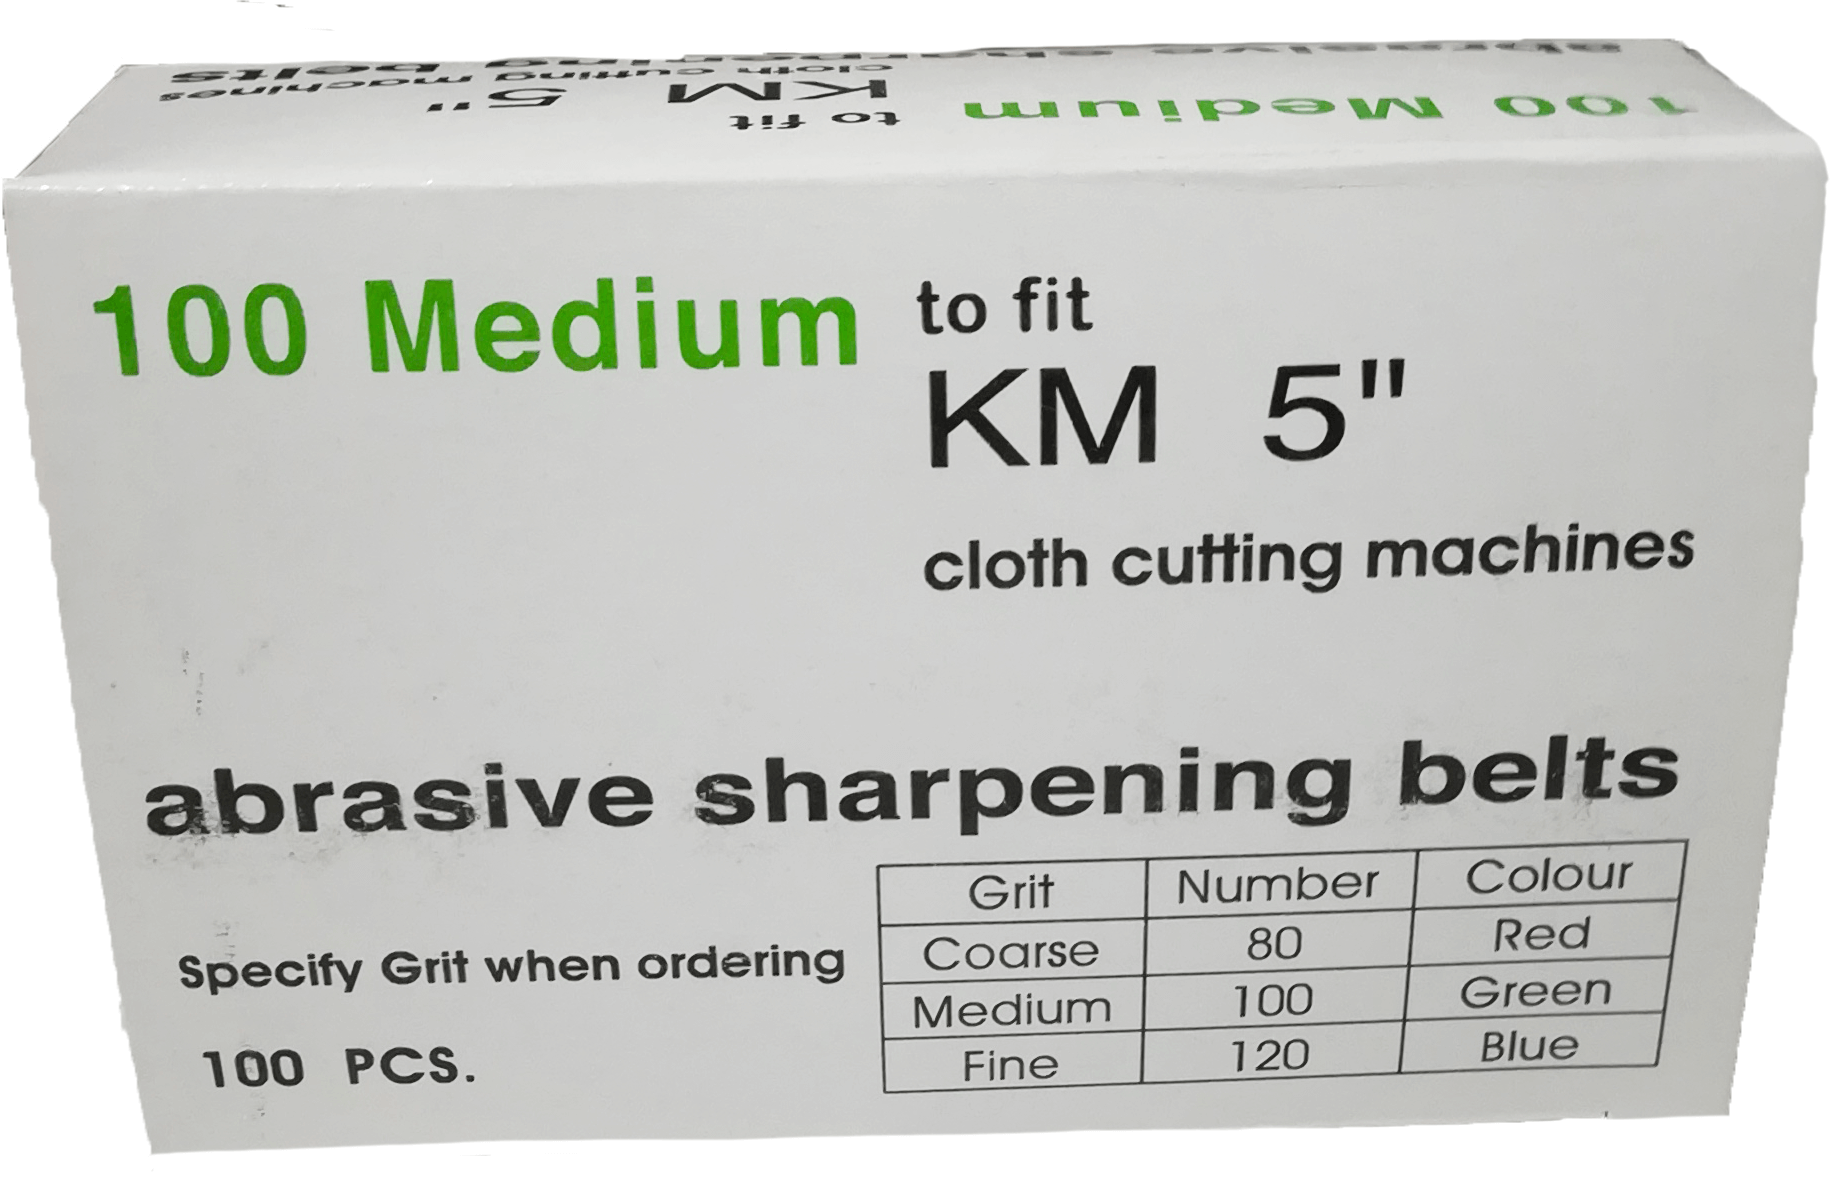 cuttingmachineskm5